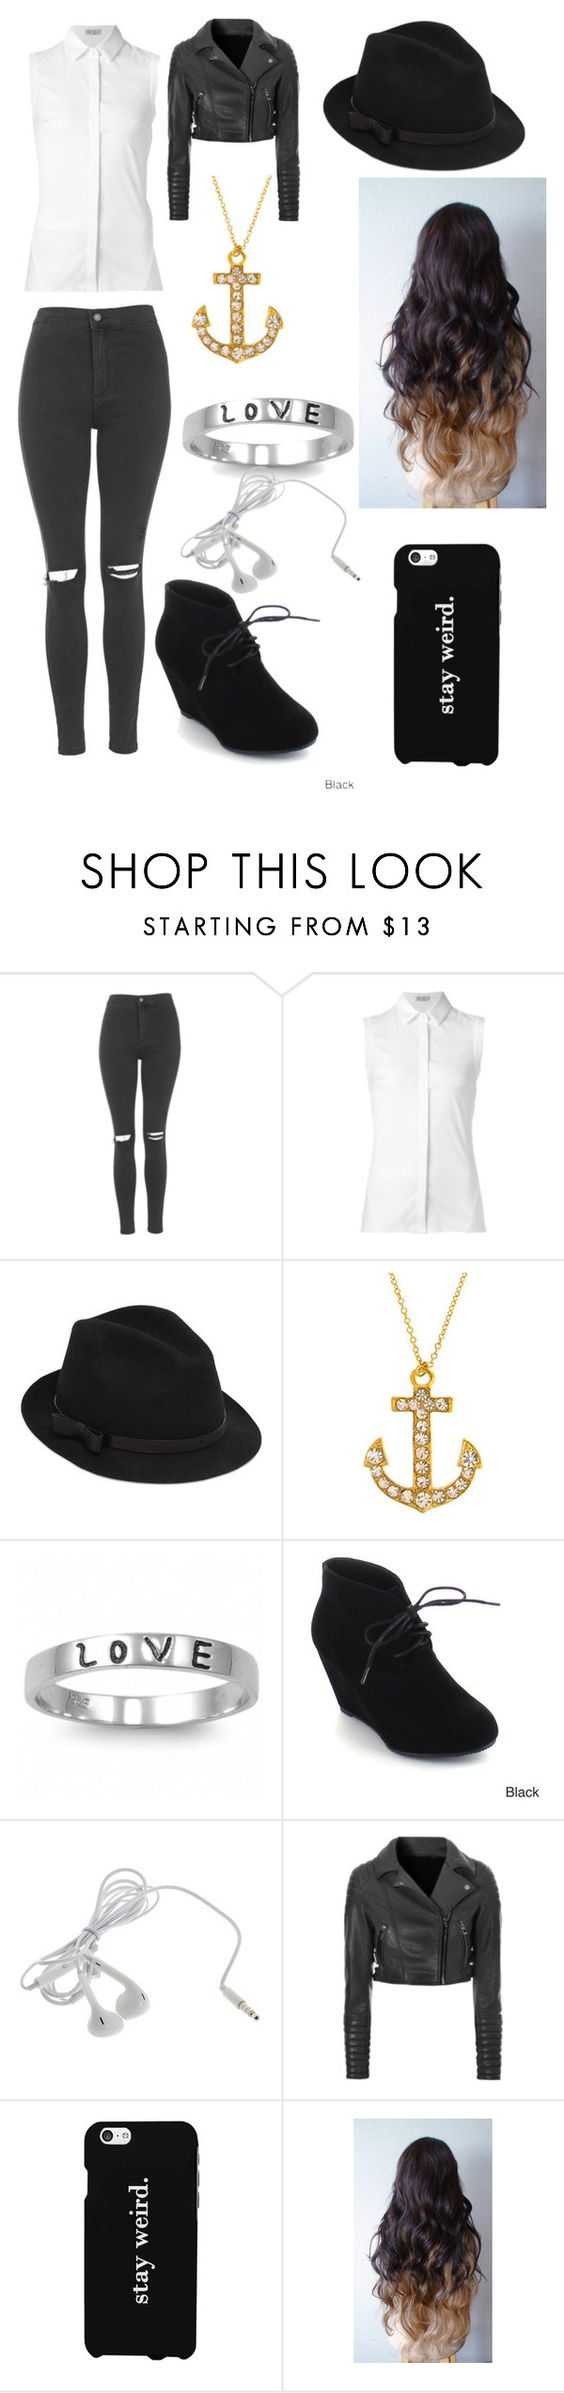 """""""My Outfit Today"""" by ducky0524 ❤ liked on Polyvore featuring Topshop, Brunello Cucinelli, RED Valentino, Fantasy Jewelry Box, ANNA, Glamorous, LG and Blonde + Blonde"""